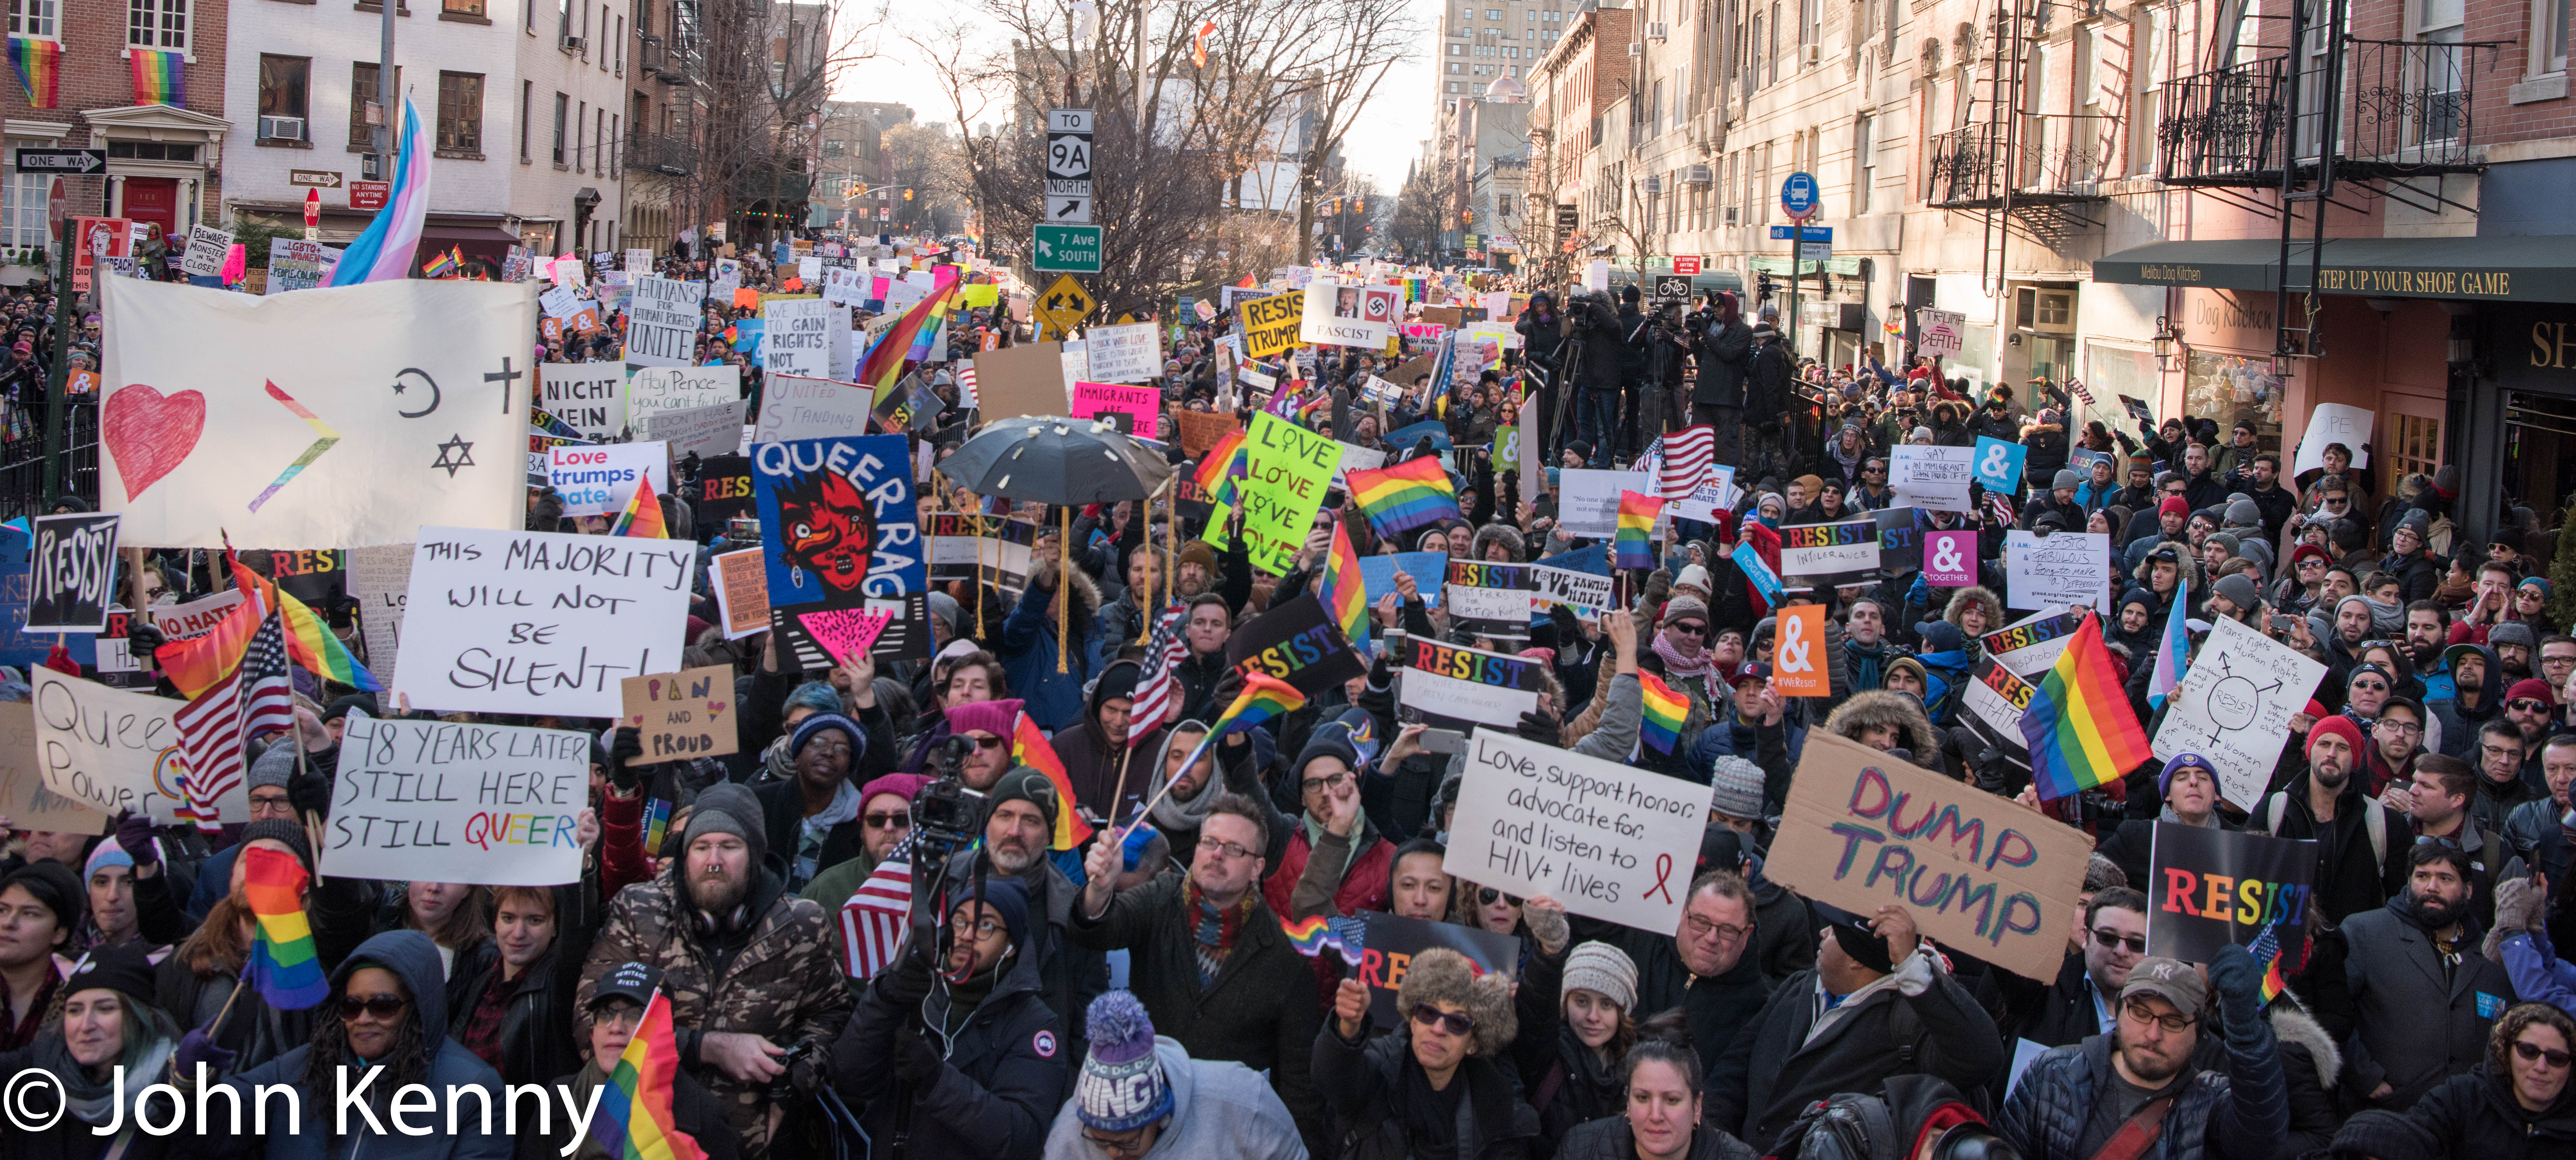 The view from the stage at Saturday's LGBT Solidarity Rally.